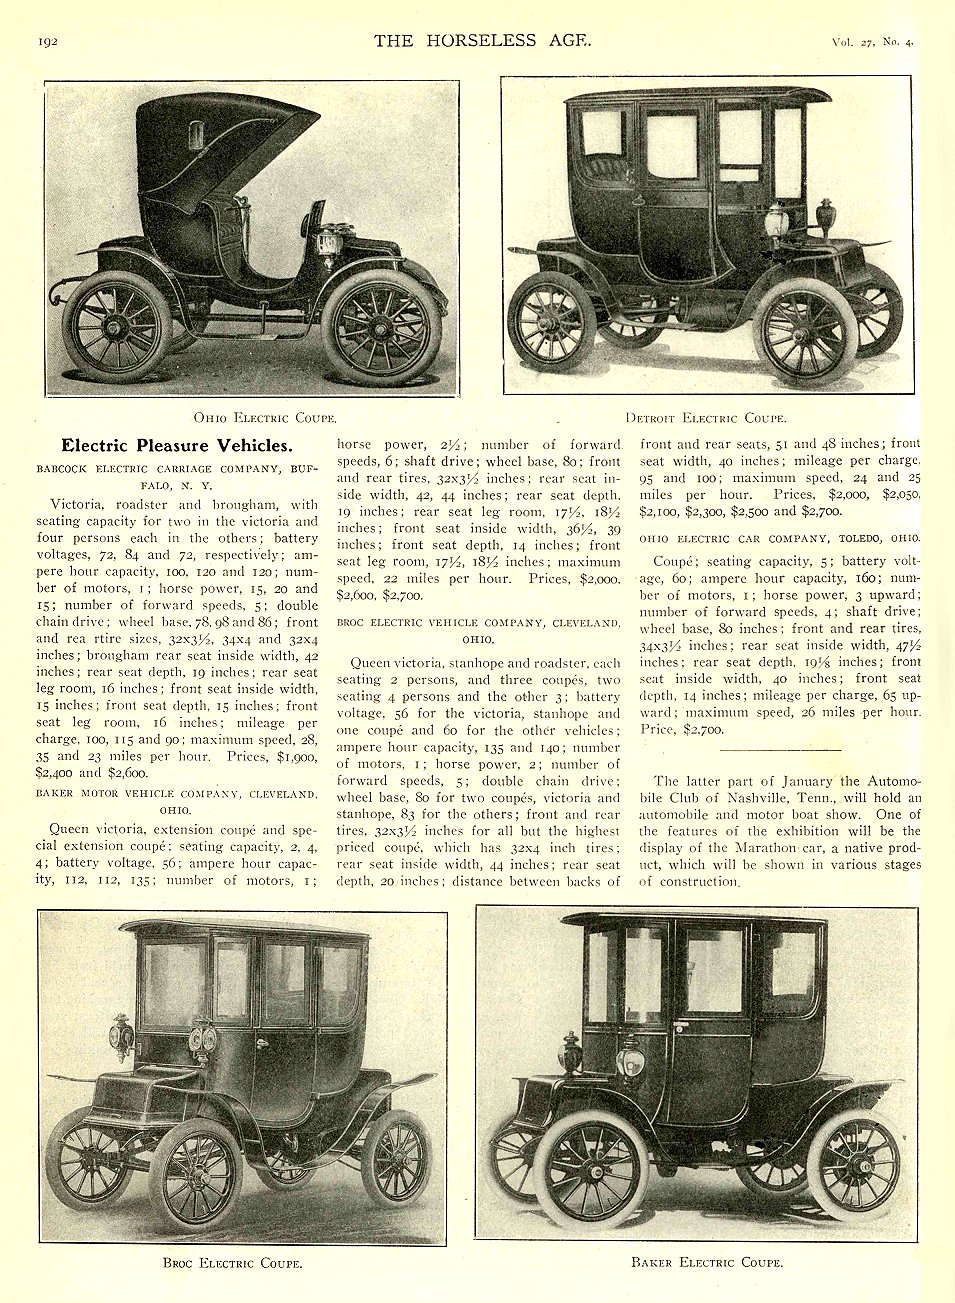 1911 1 25 BABCOCK Electric Article Electric Pleasure Vehicles THE HORSELESS AGE January 25, 1911 University of Minnesota Library 8.25″x11.5″ page 192